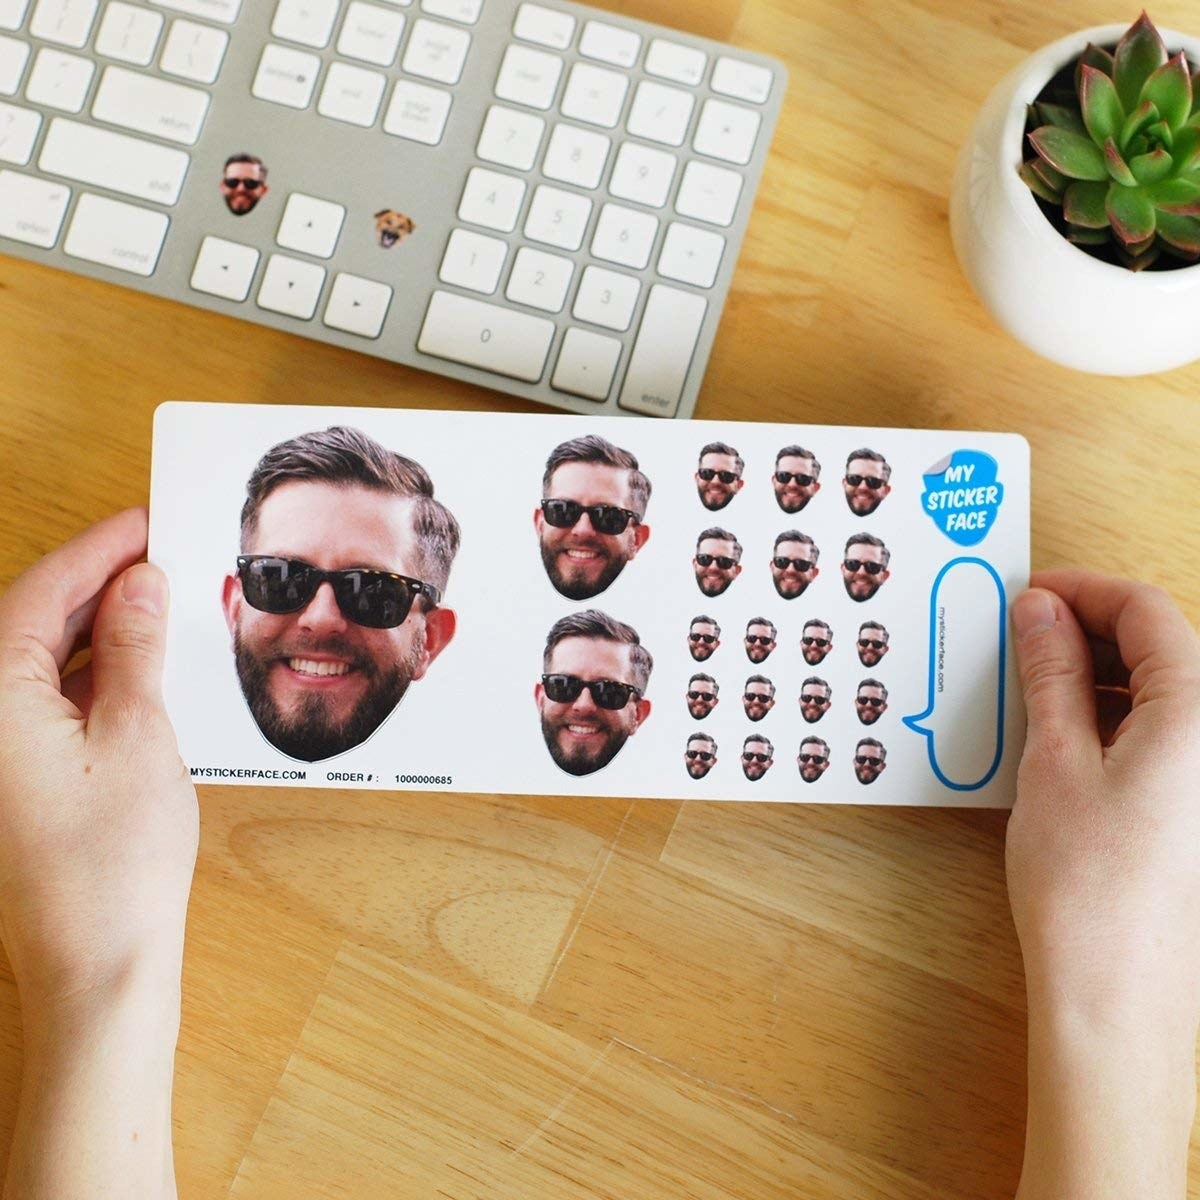 stickers that look like someone's face